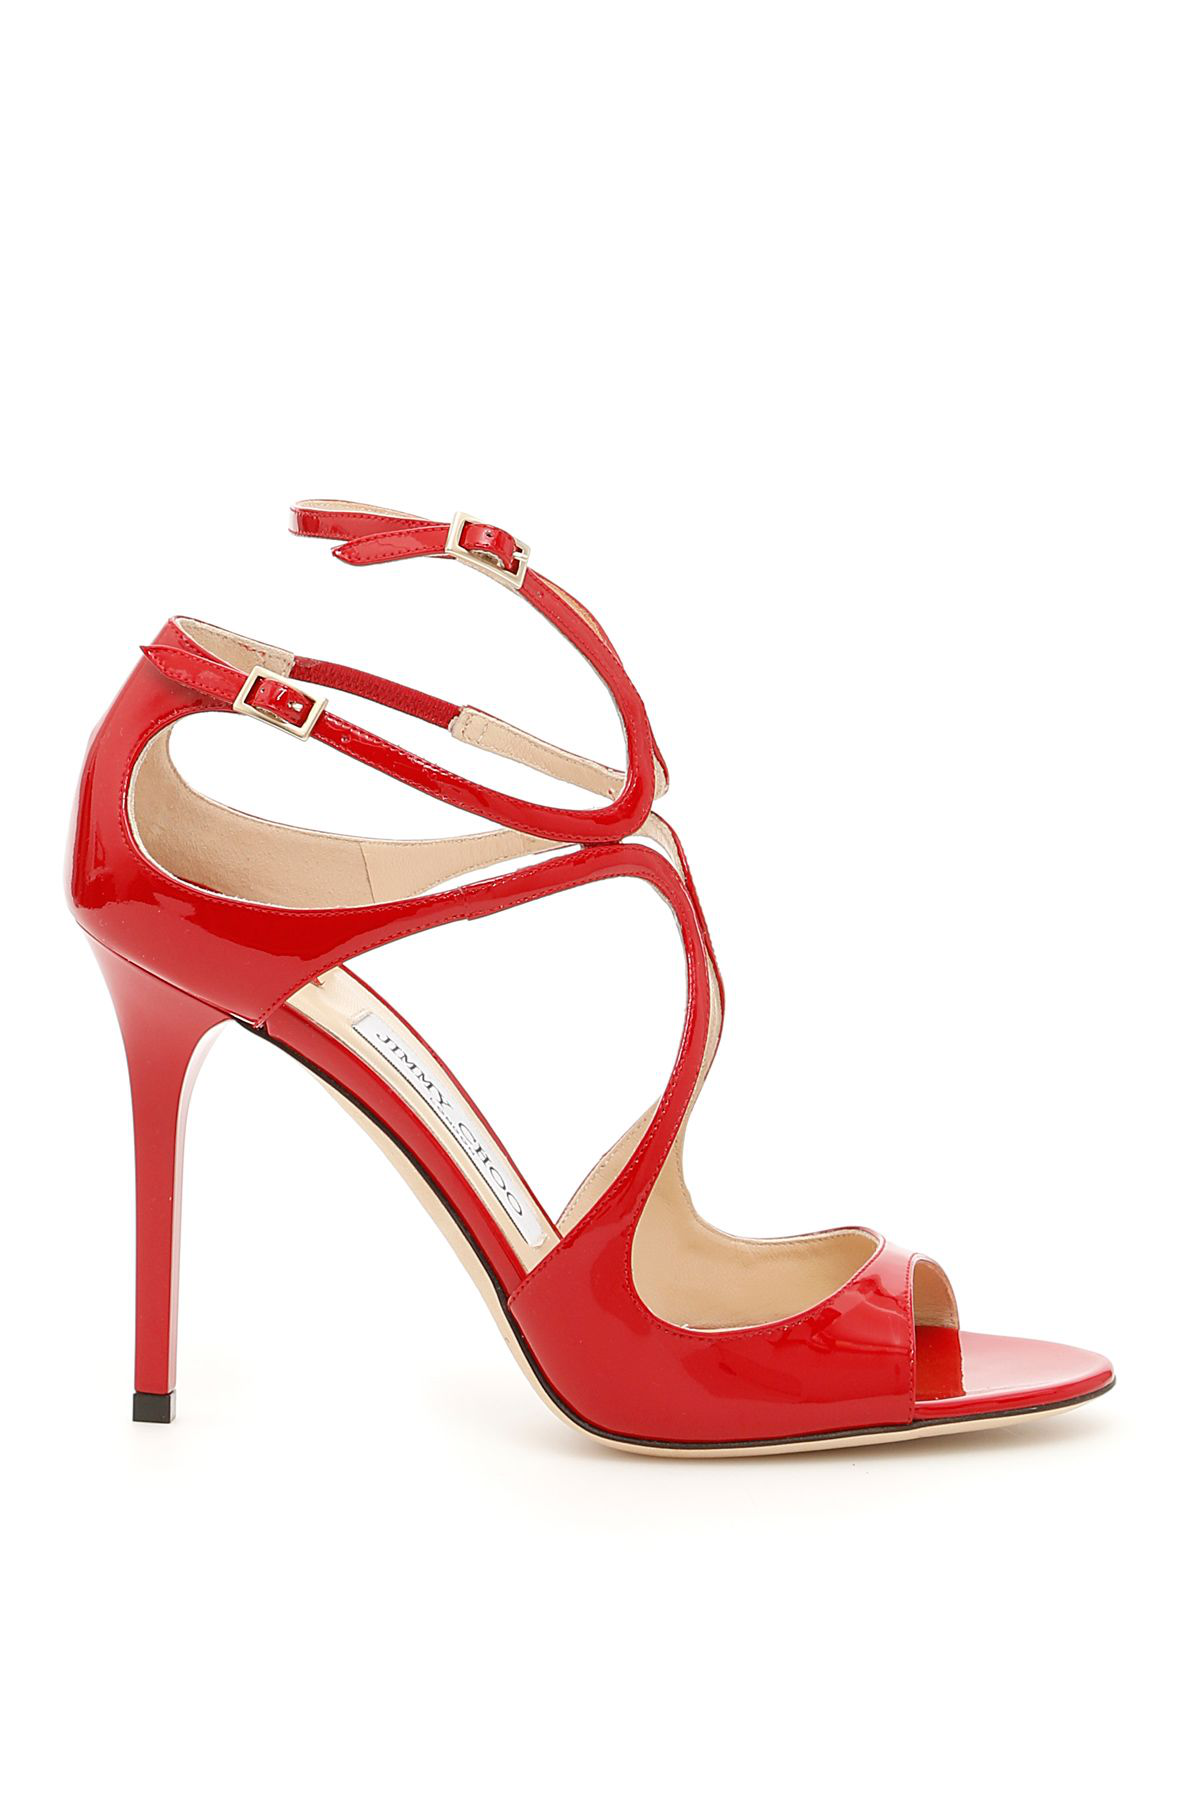 0492831fe6bd Jimmy Choo Lance Red Patent Leather Strappy Sandals